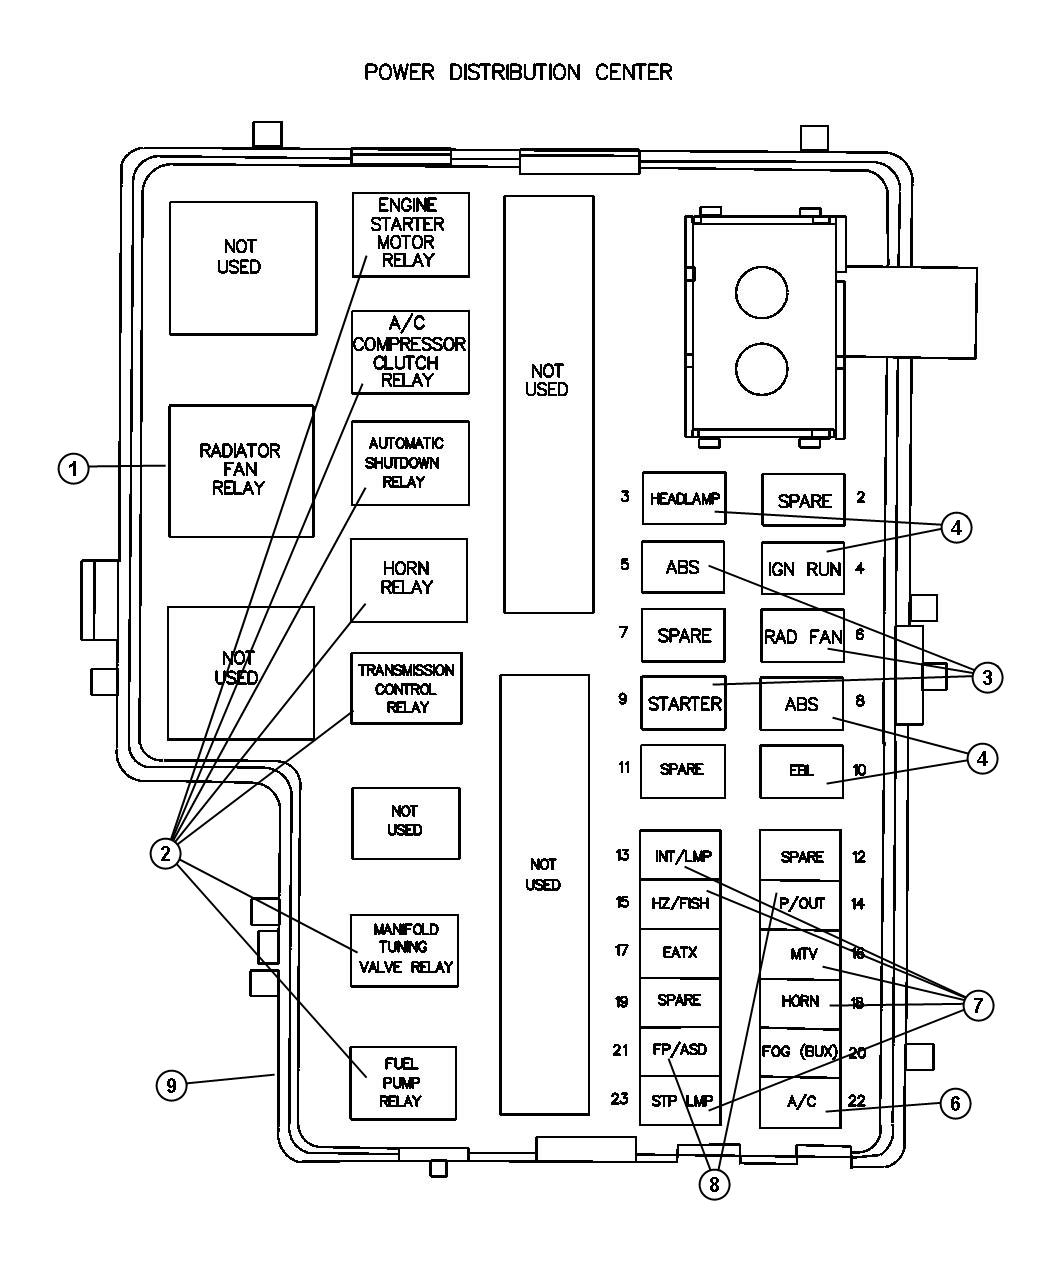 95 Neon Wiring Diagram Will Be A Thing Chrysler 2005 Dodge Starter Fuel Pump